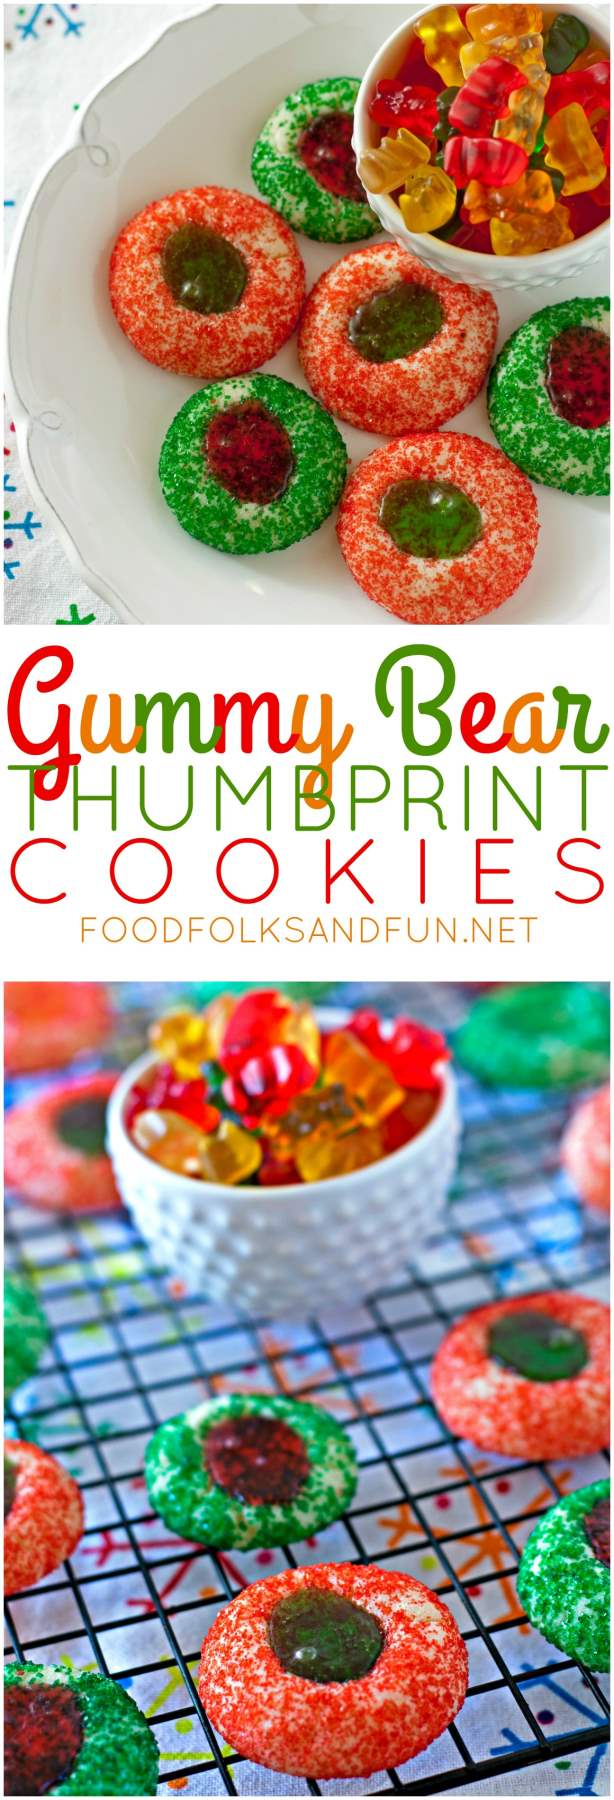 Gummy Bear Thumbprint Cookies with Text overlay for Pinterest